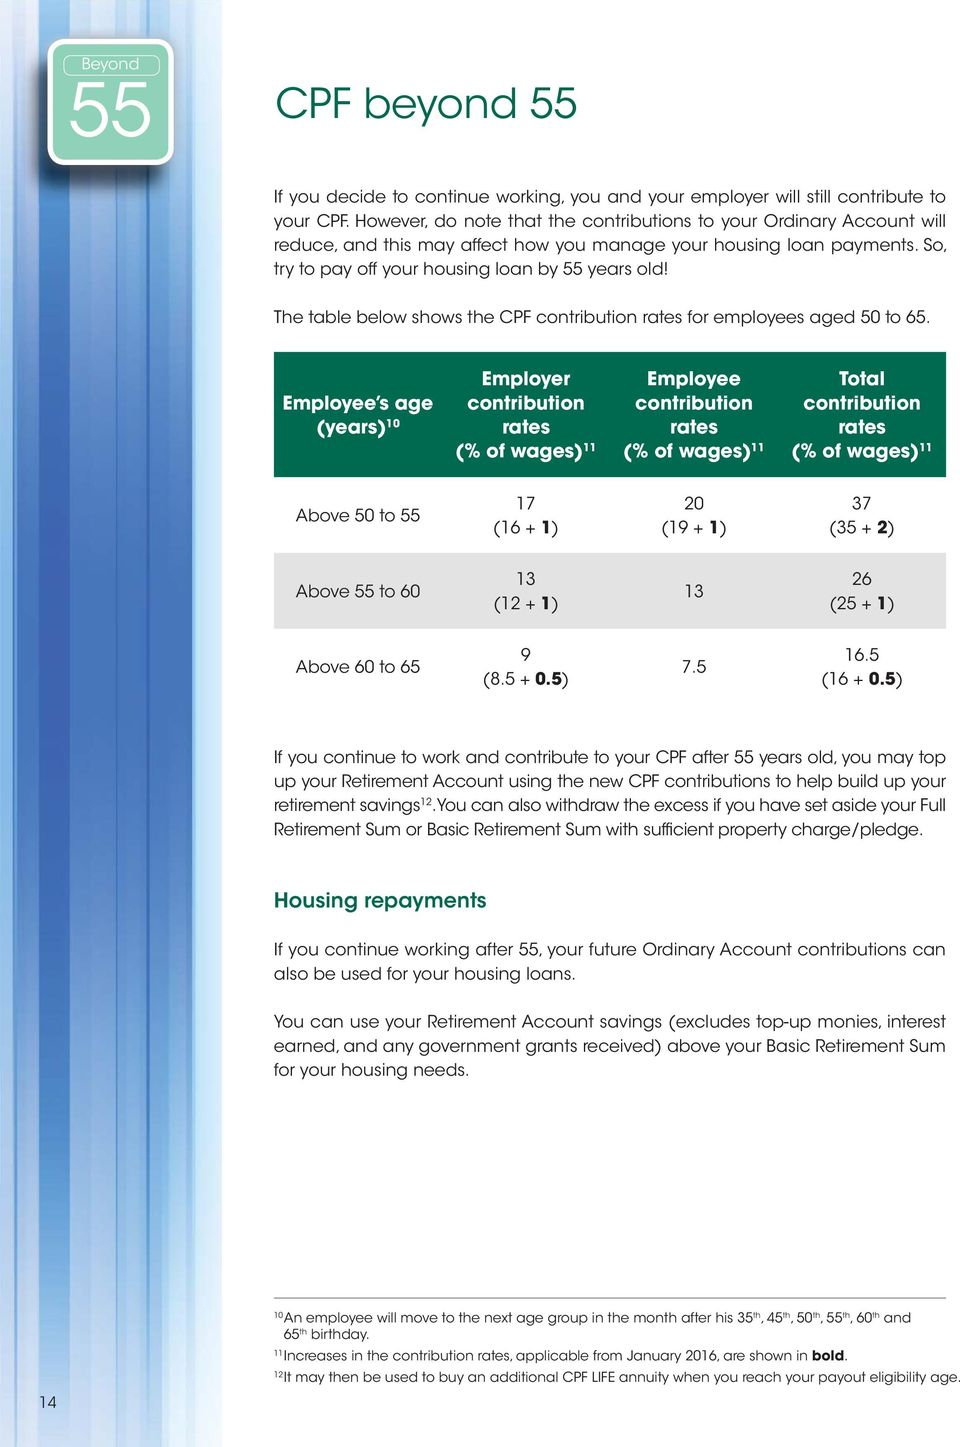 The table below shows the CPF contribution rates for employees aged 50 to 65.